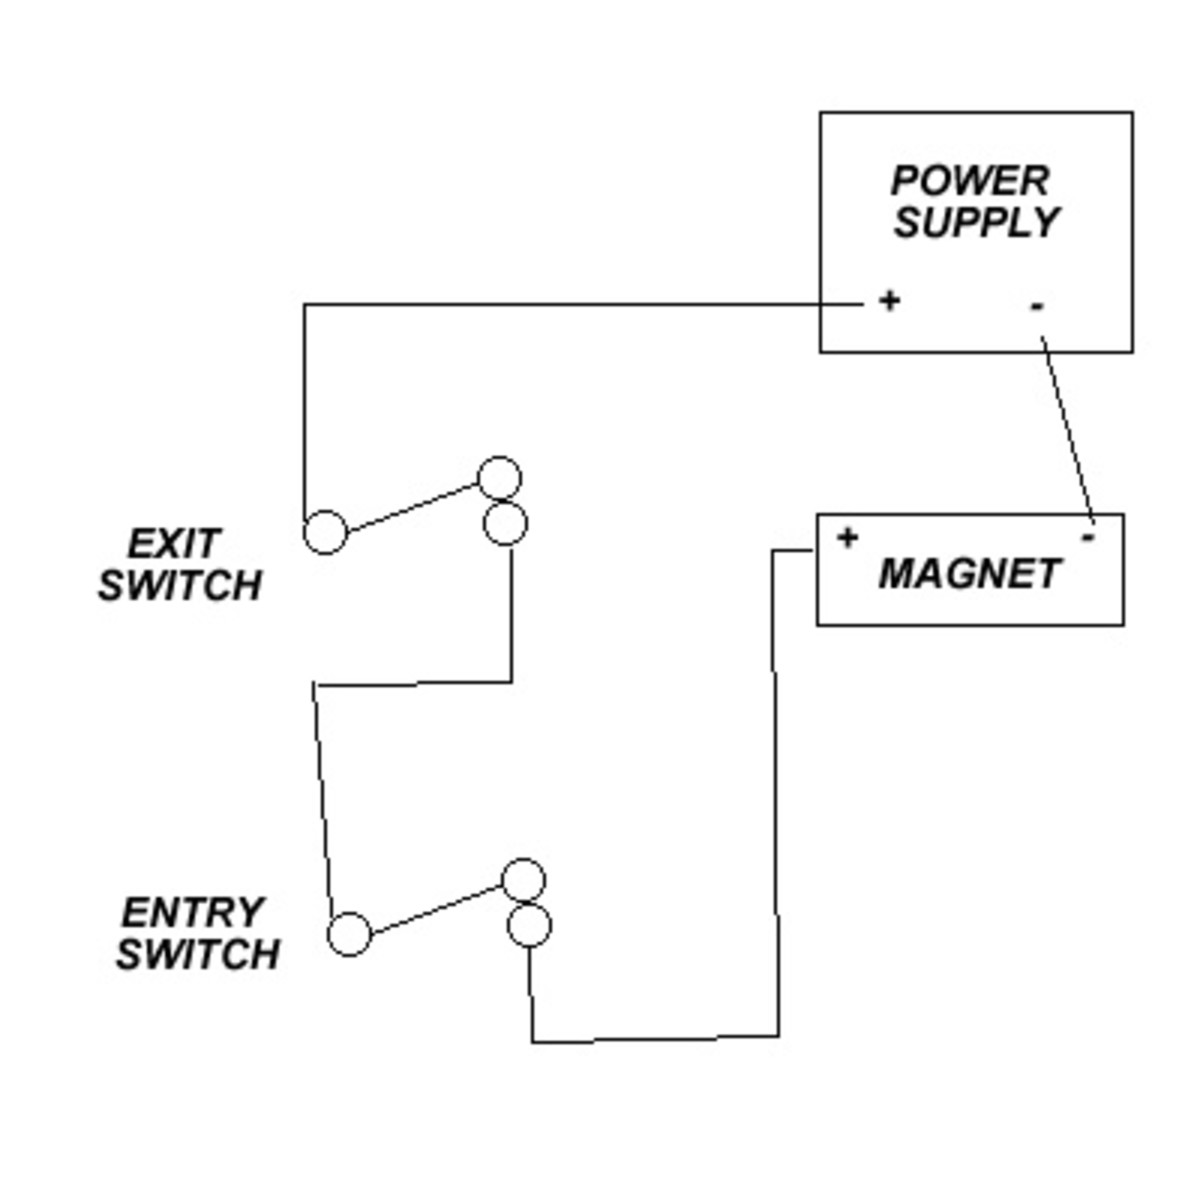 Basic Magnetic Door Lock System | HubPages on